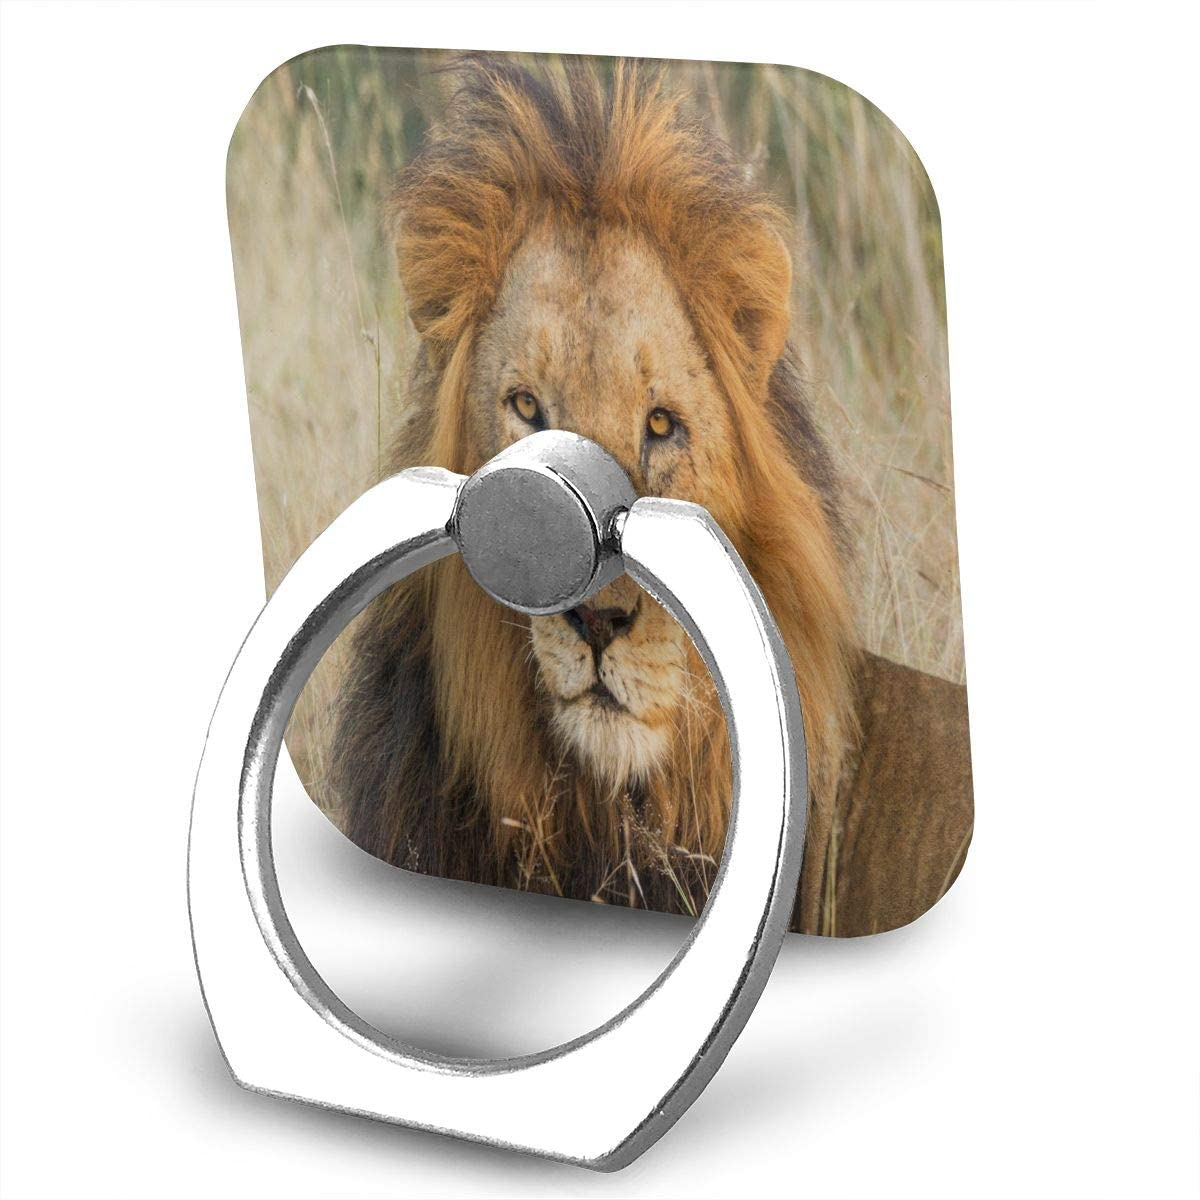 SLHFPX Universal Phone Ring Holder Male Lion Relaxing in Grass with Eye Contact Adjustable 360°Rotation Square Finger Grip Loop Cell Phone Stand for Phone X/6/6s/7/8/8/10/11 Plus Smartphone Android